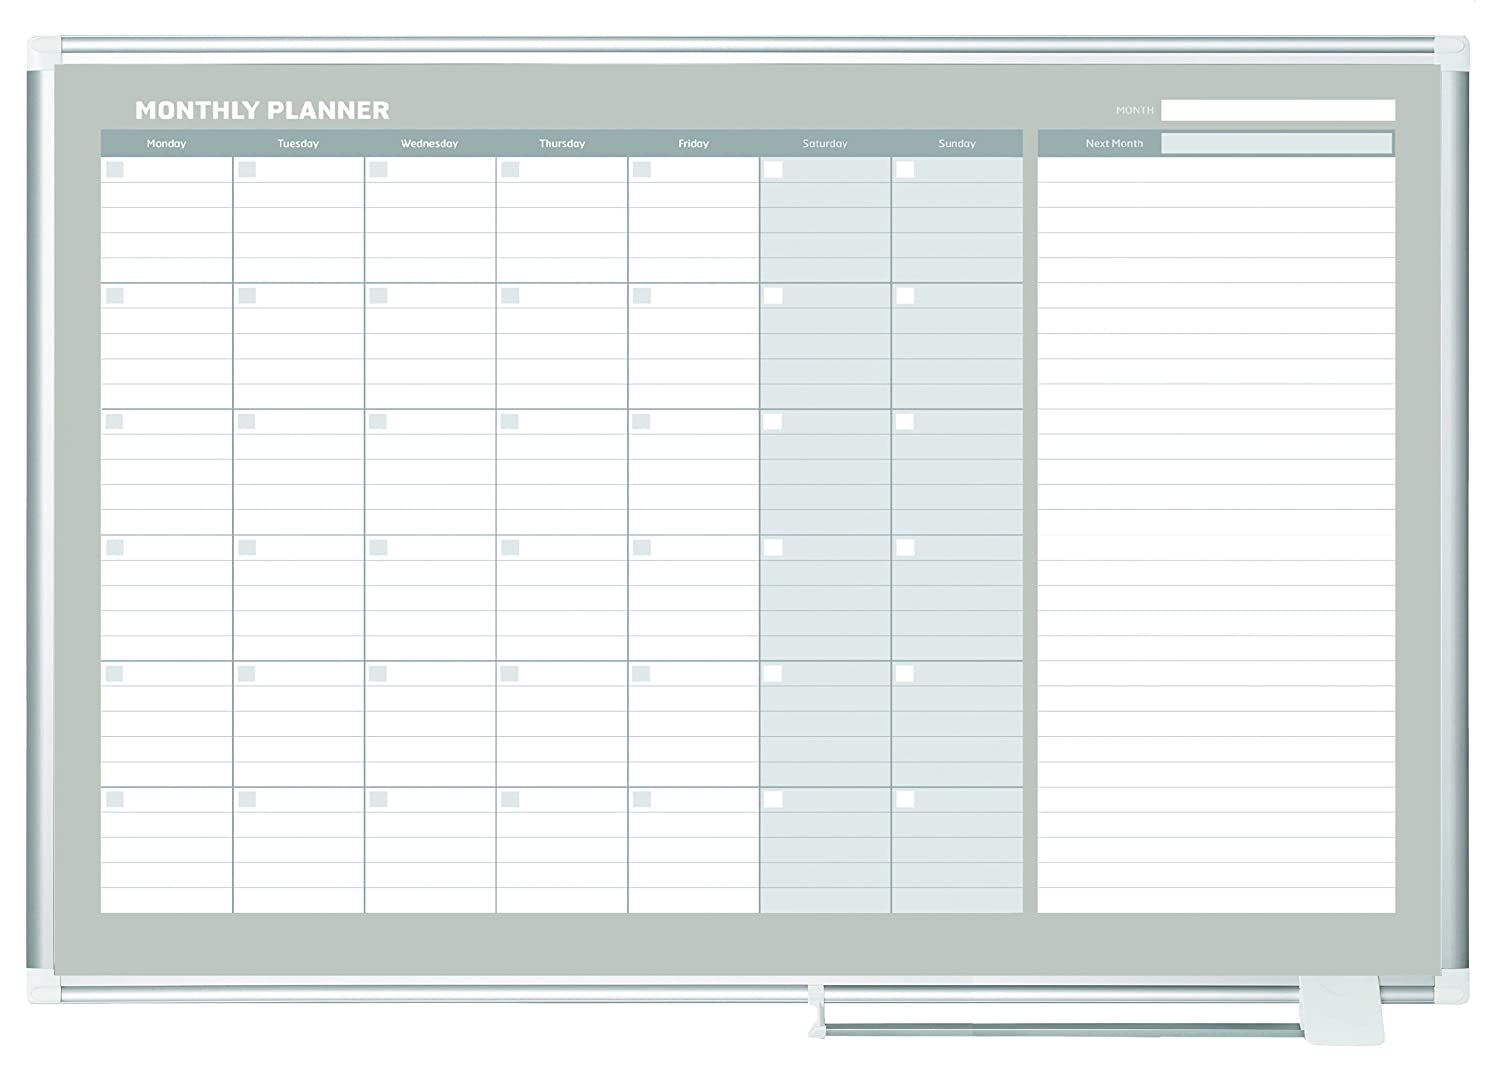 Amazoncom Mastervision Planning Board Magnetic Dry Erase Monthly